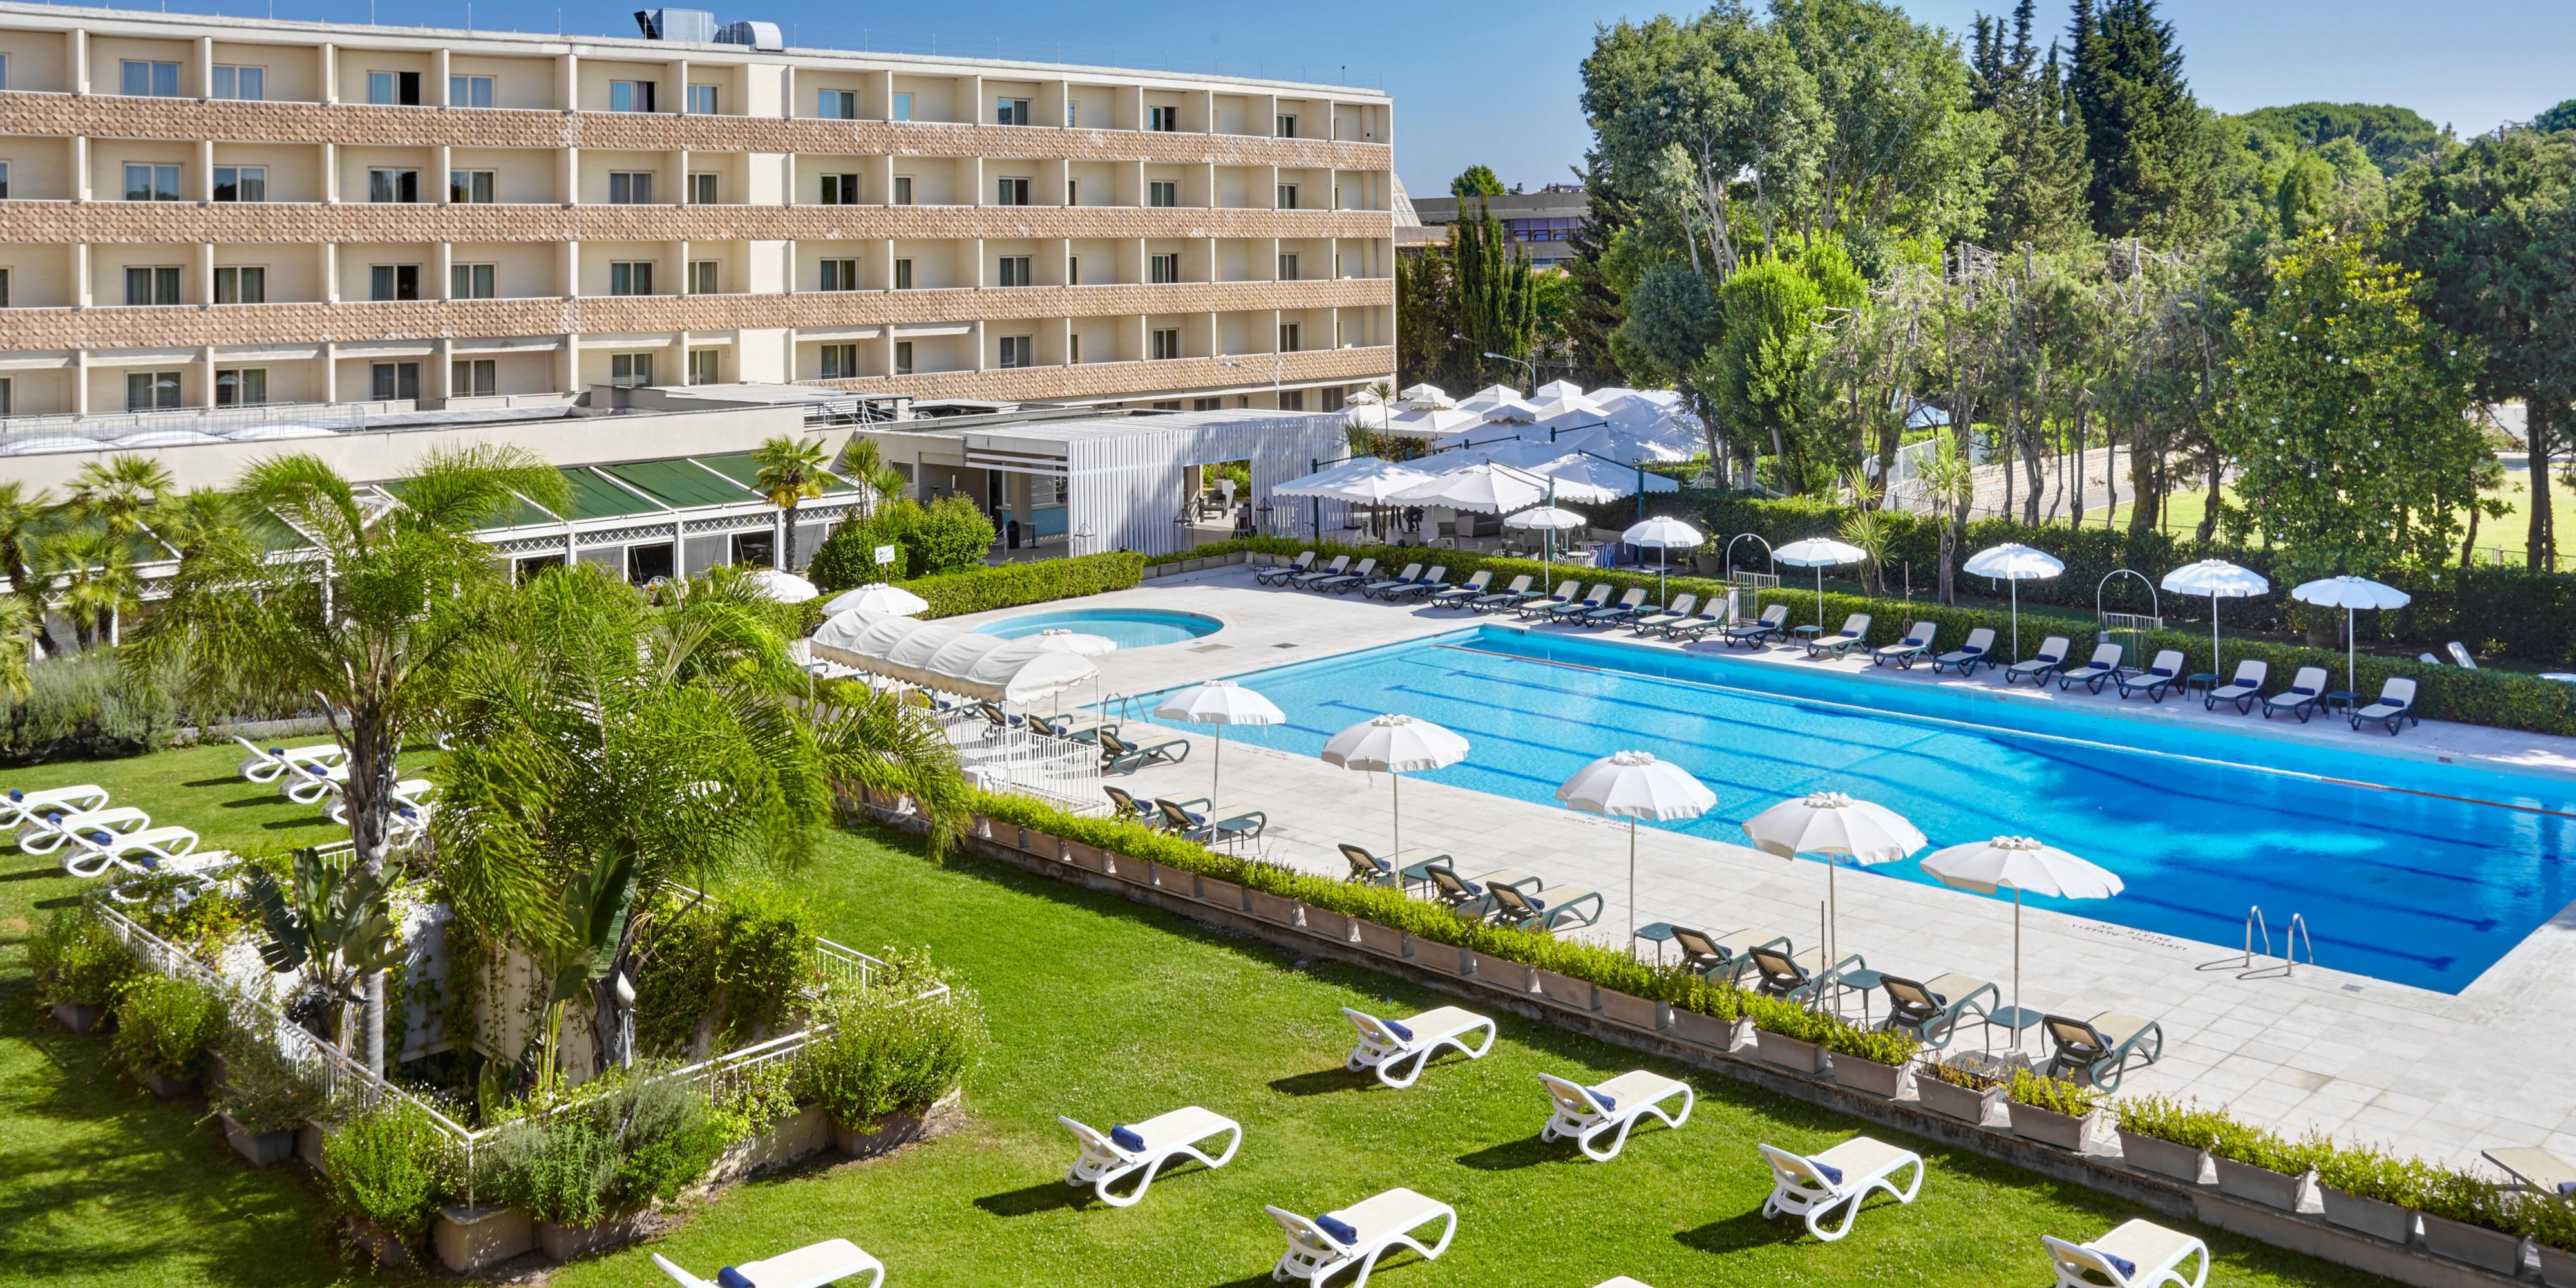 4 Star Business Hotel Crowne Plaza Rome St Peter S